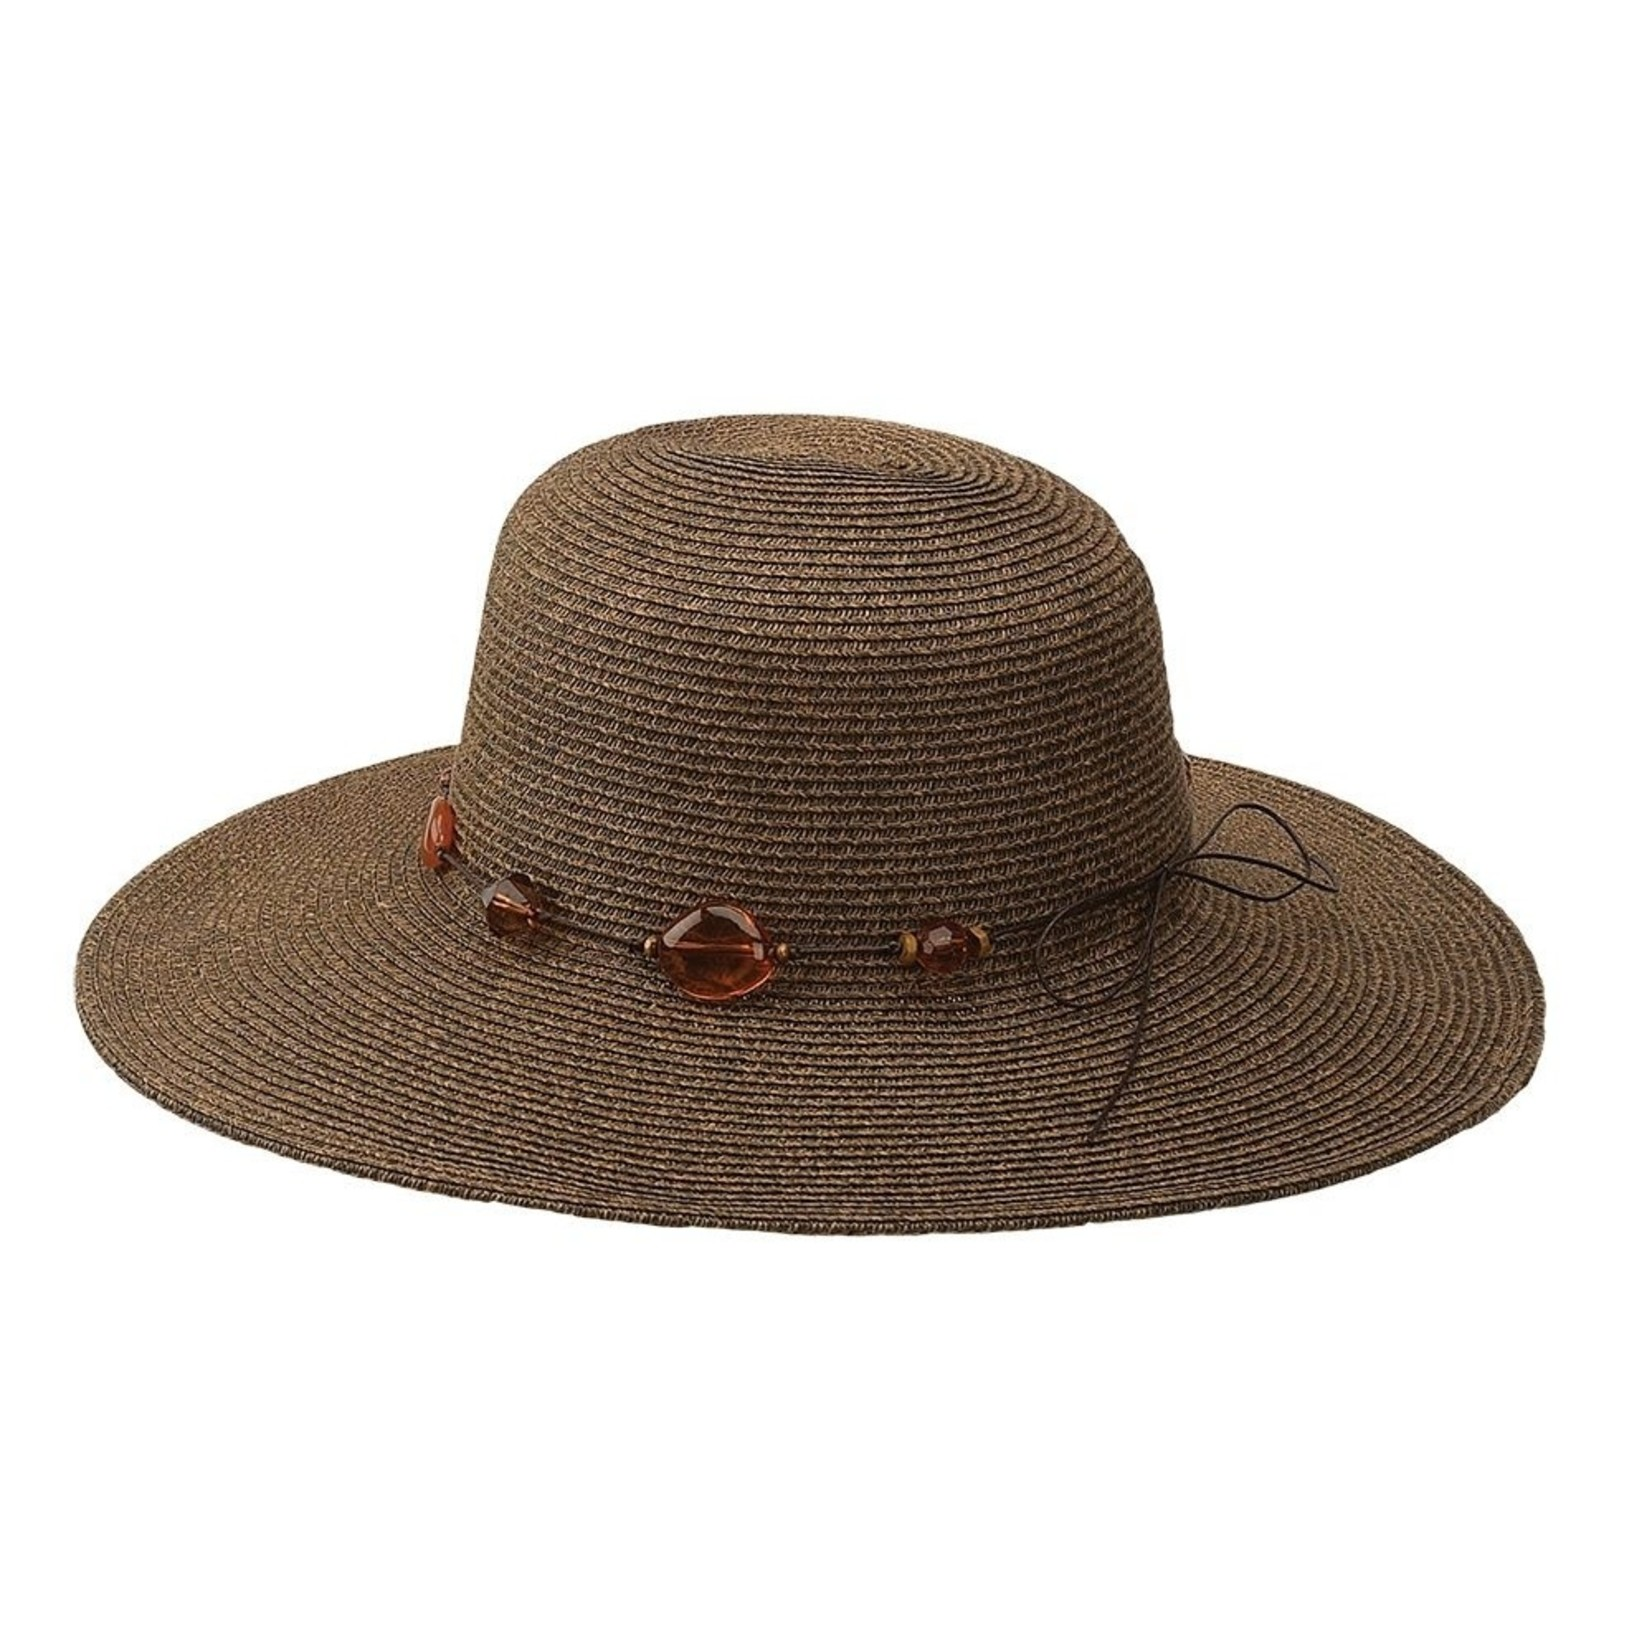 Jeanne Simmons Brown Wire Brimmed Hat w/ Beaded Tie